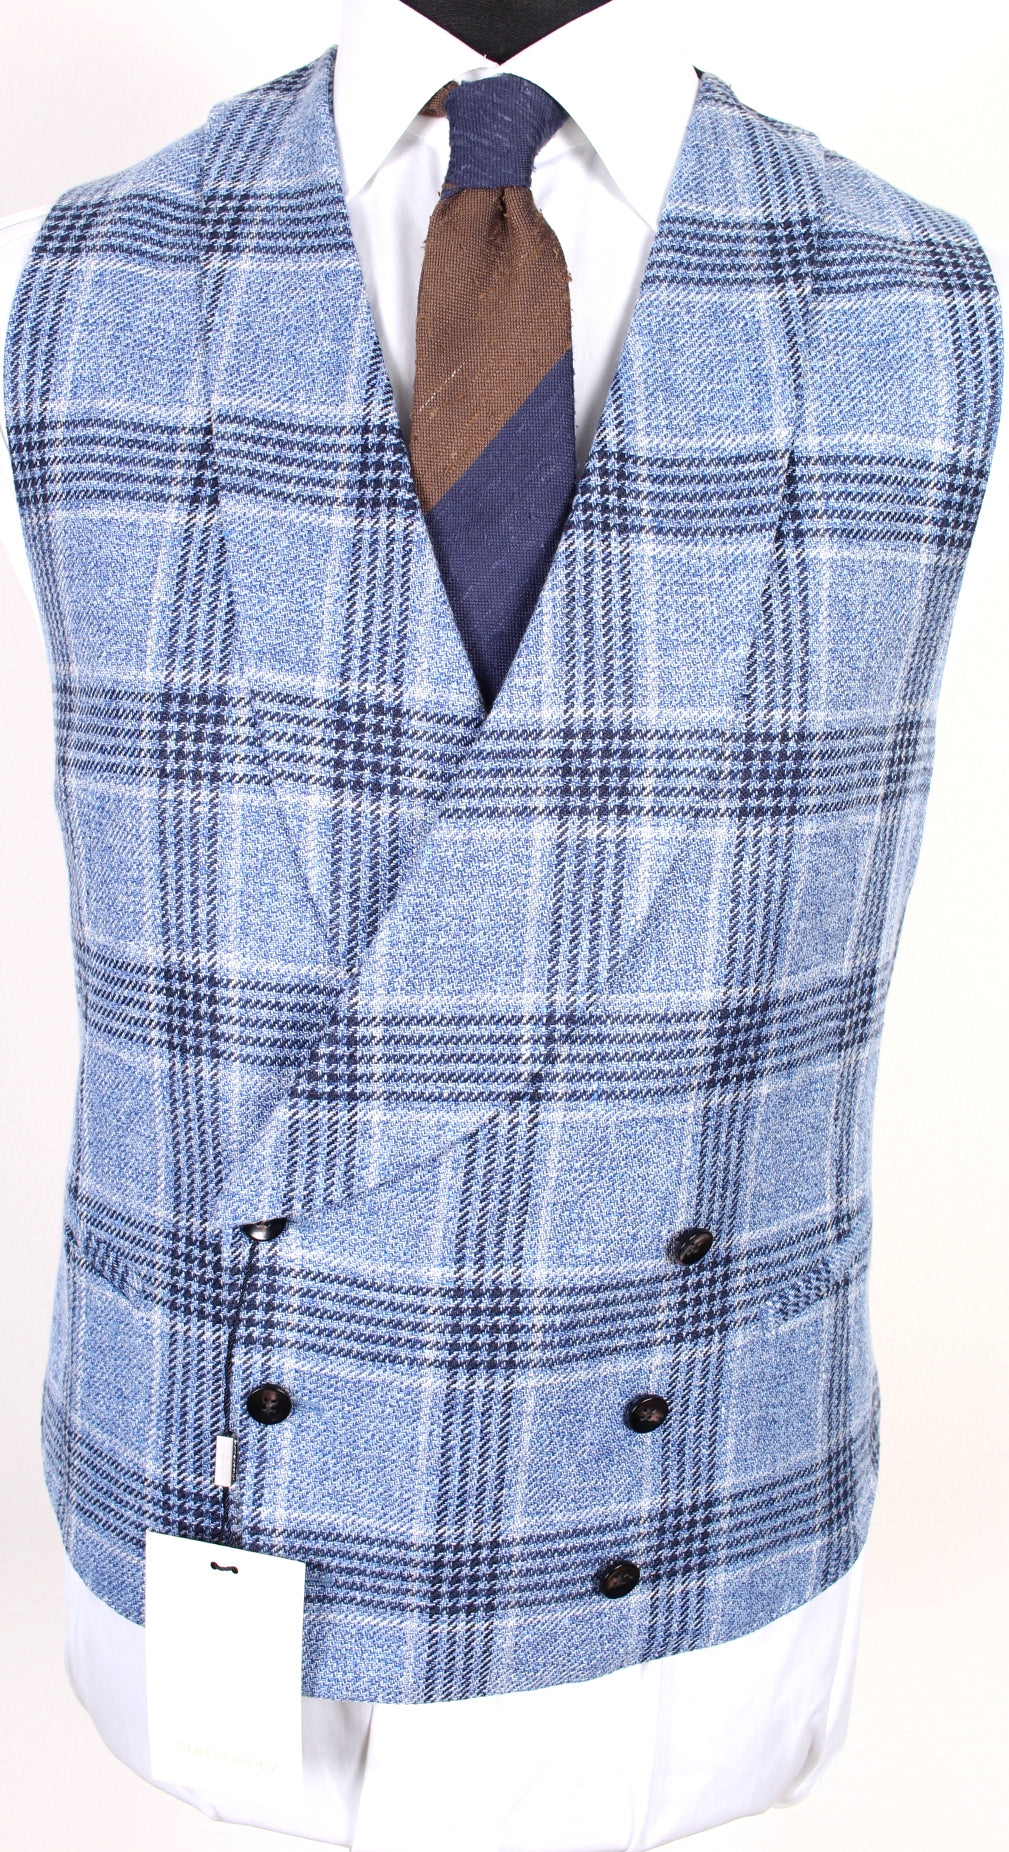 New Suitsupply Salvo Light Blue Check Linen, Silk, Cotton Waistcoat - Size 38R, 40R, 42R, 44R, 46R